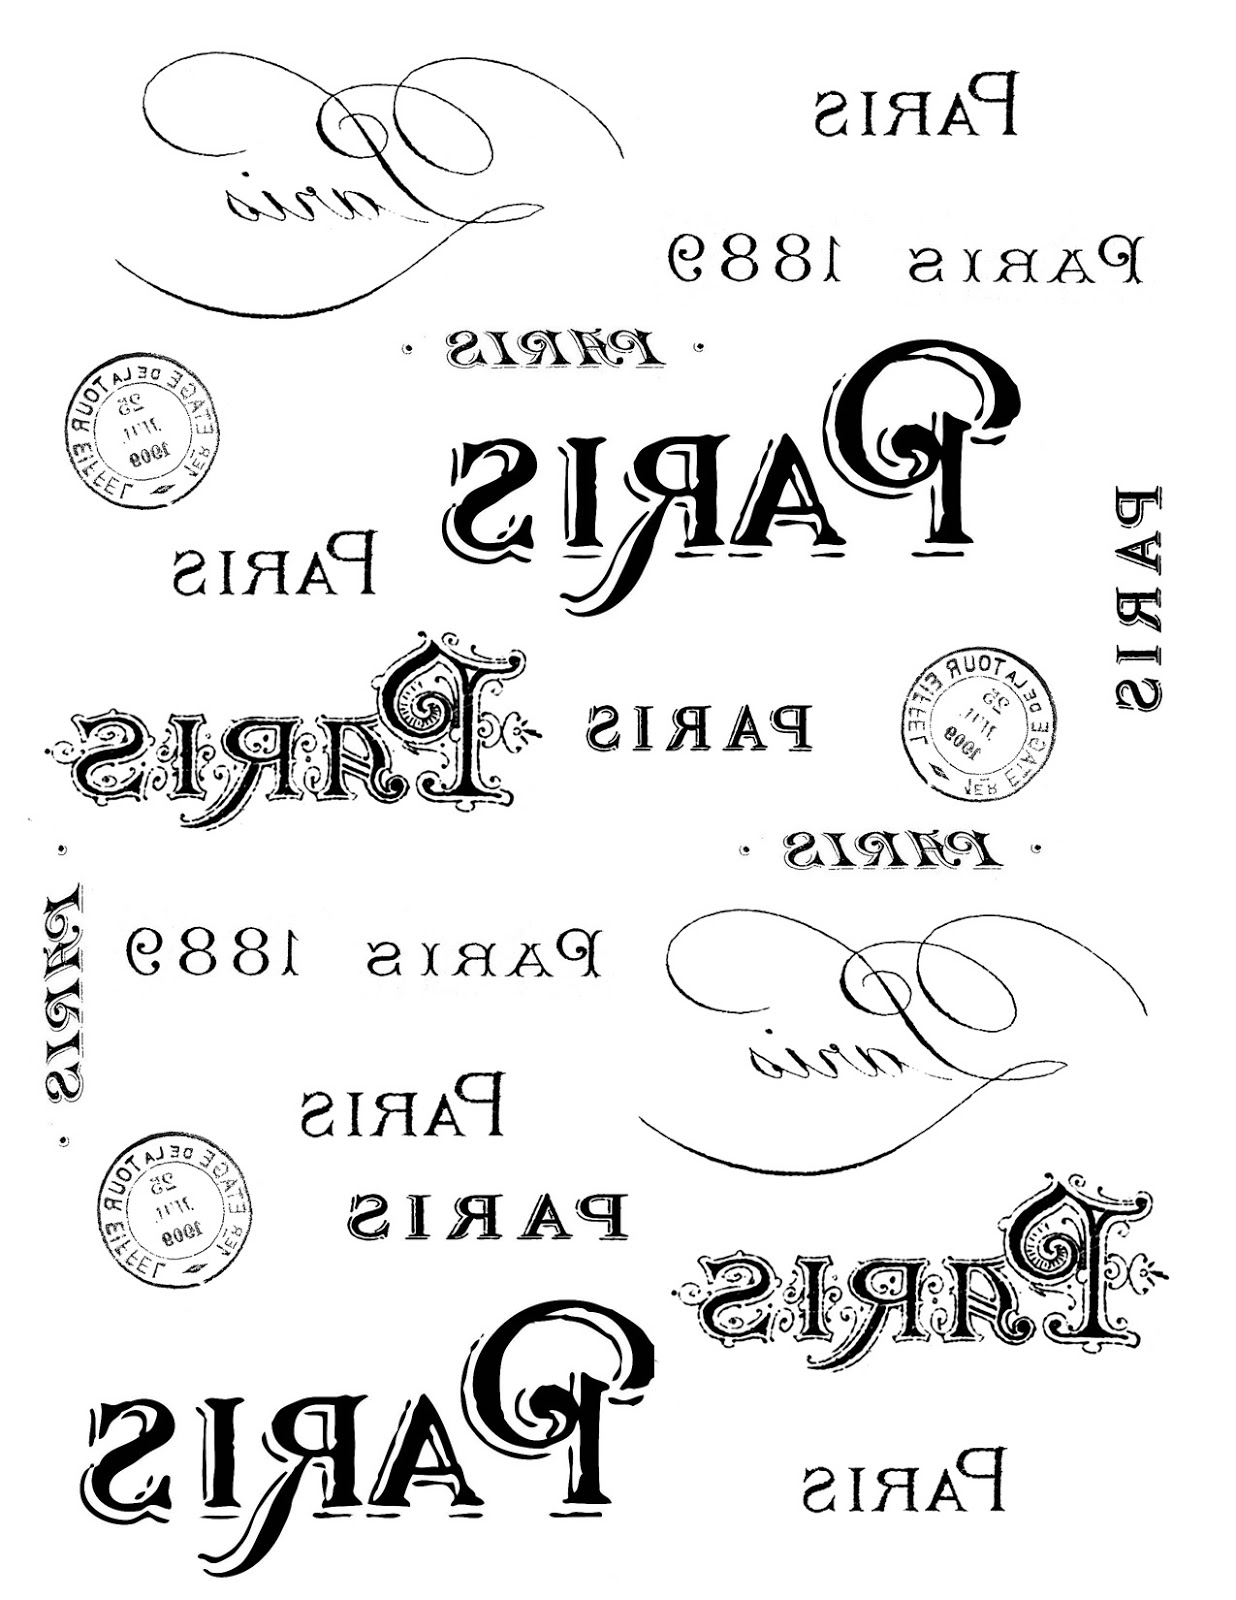 French Transfer Printable - Paris Typography - The